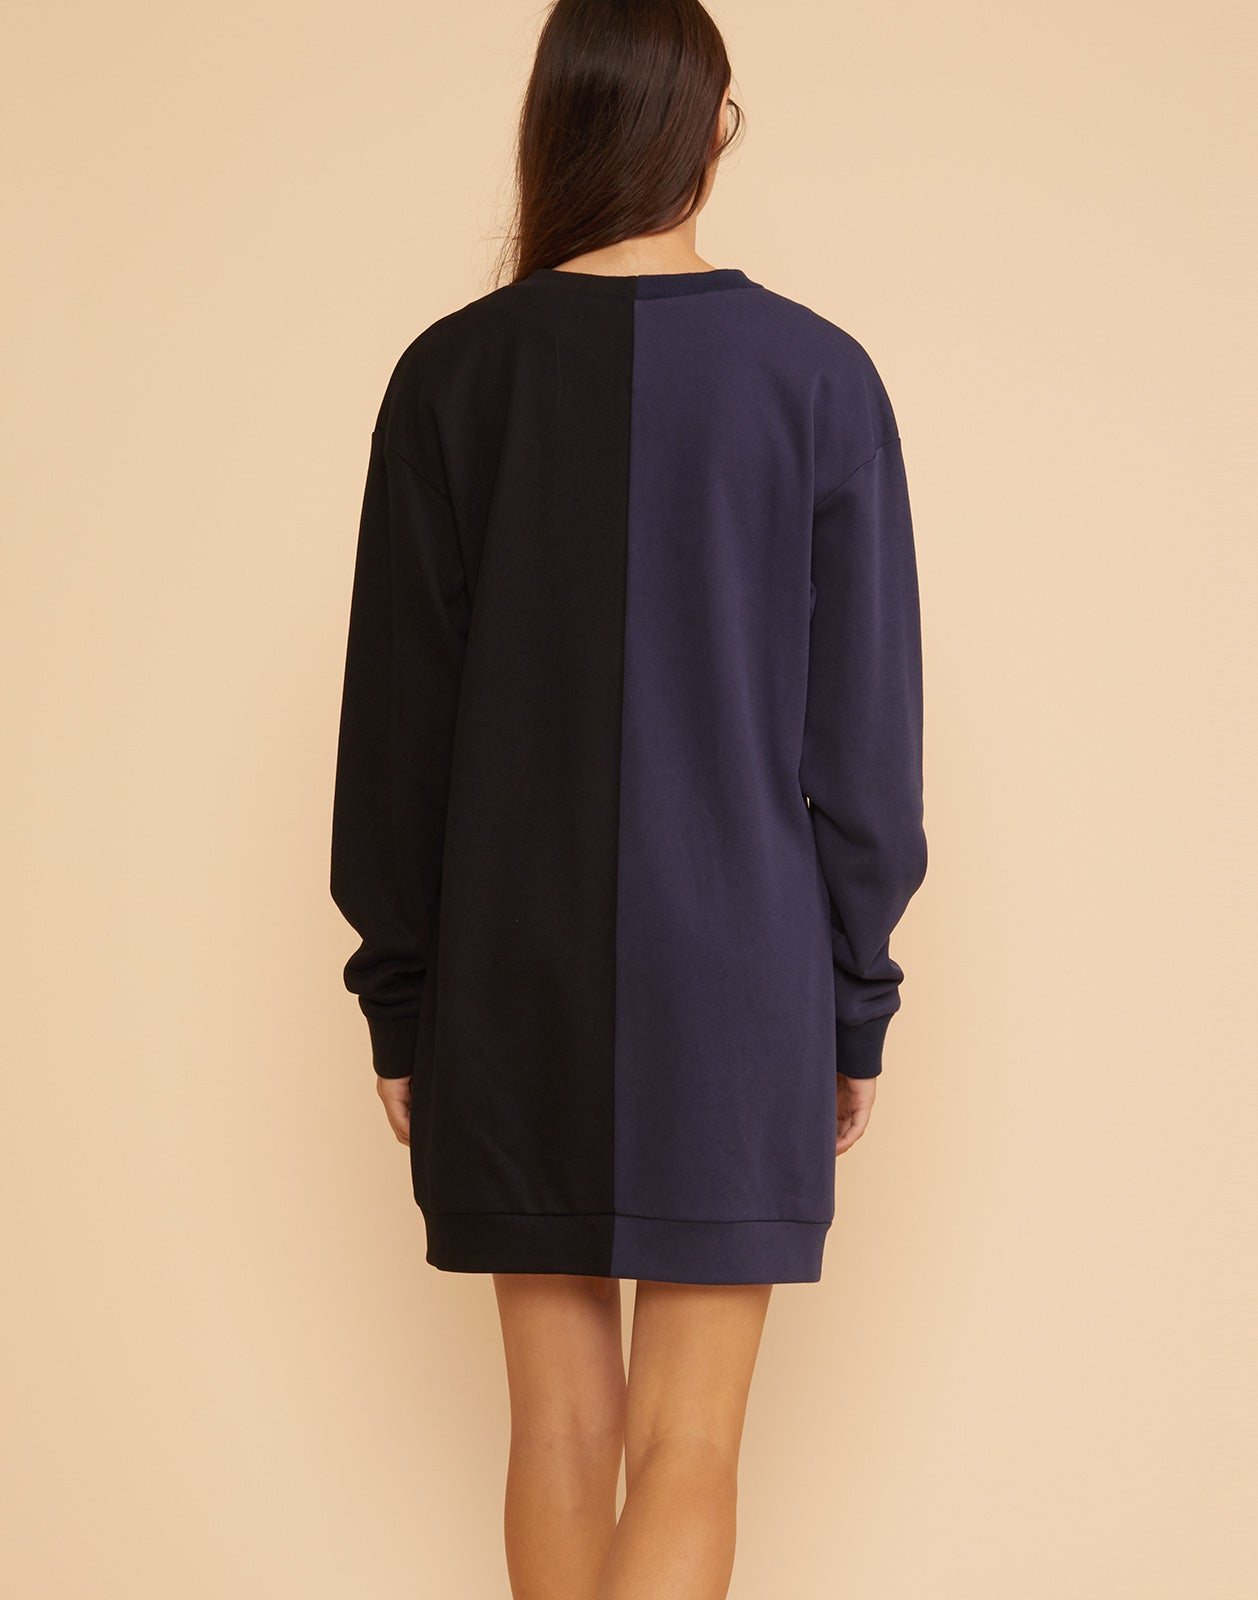 Back view of the CaliYork sweatshirt dress in half navy half black.